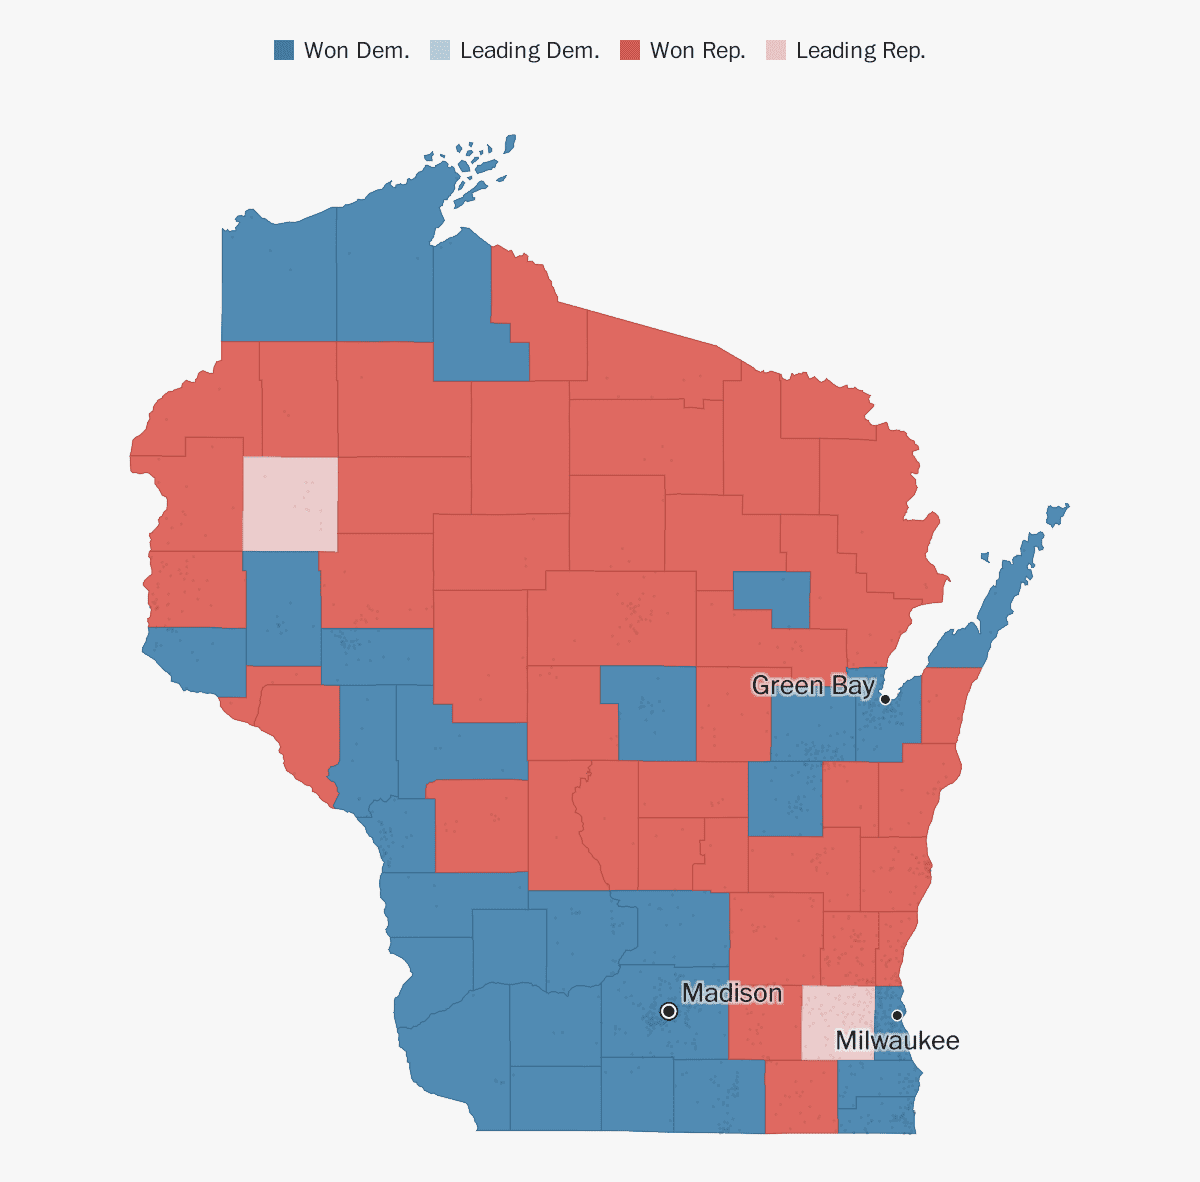 Wisconsin election results 2018 - The Washington Post